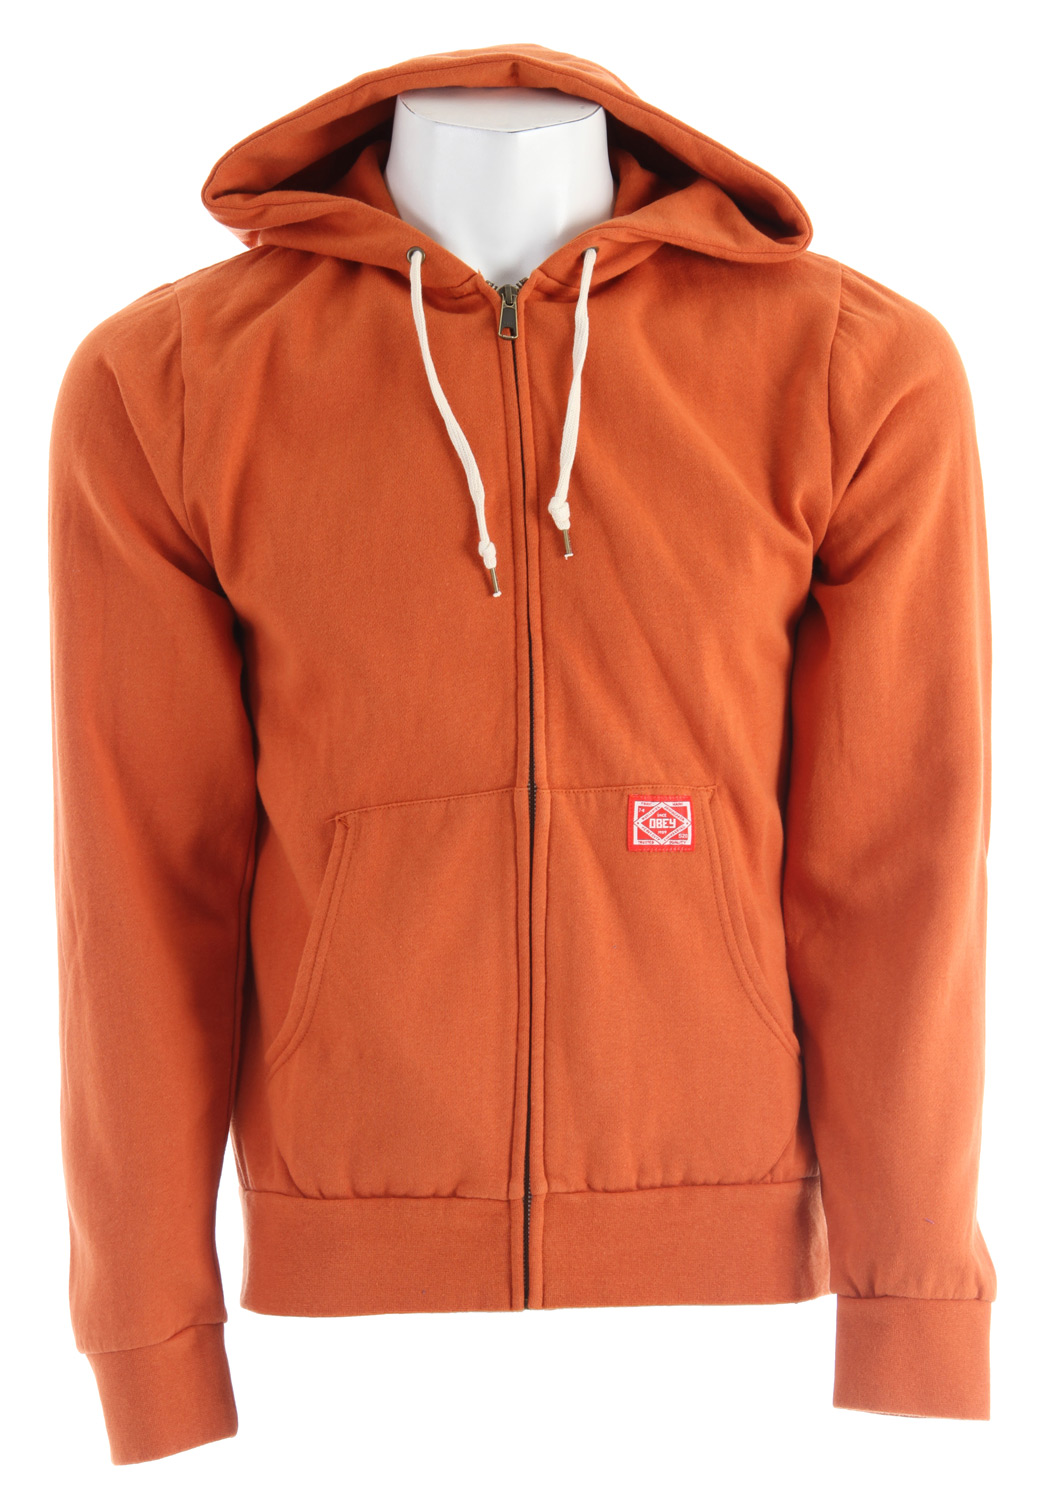 Key Features of the Obey Trademark Zip Hoodie: Slim fit front Hooded fleece with classic trademark labeling 55%/45% polyester - $48.95